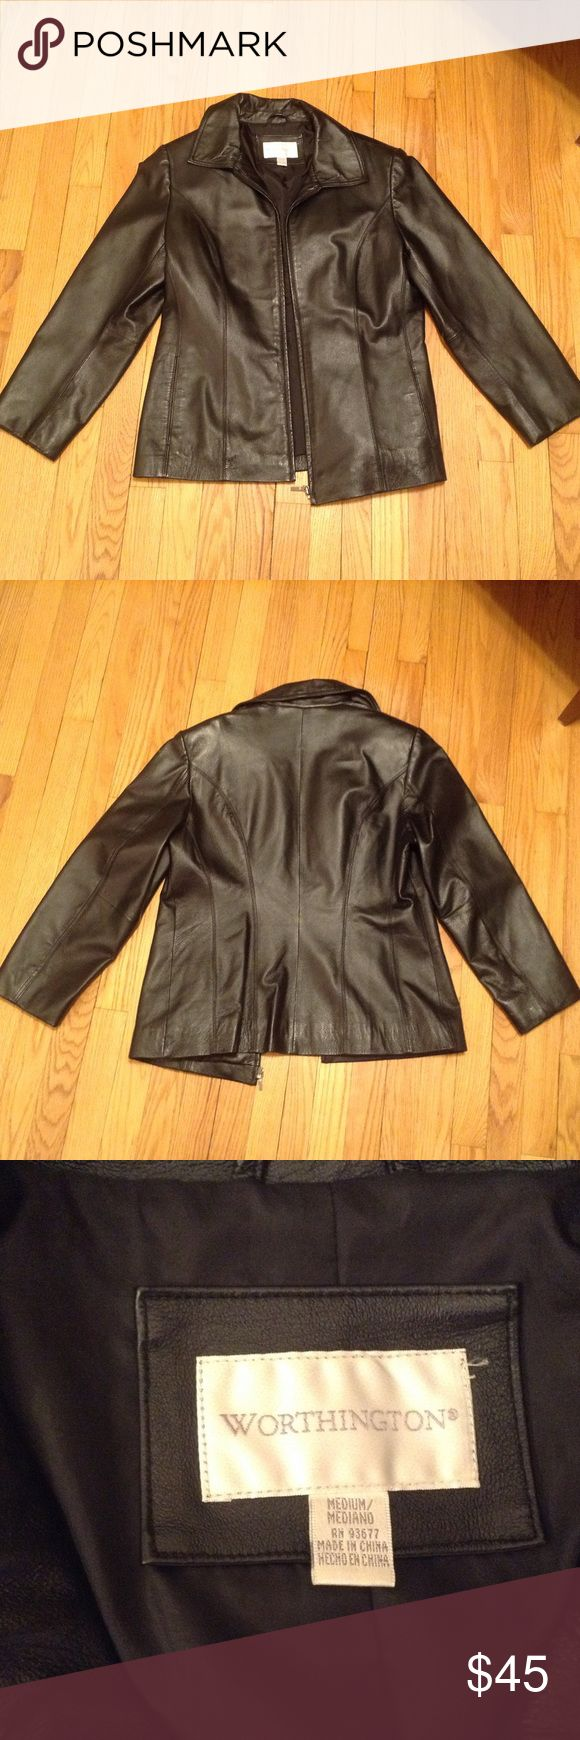 Women's Leather Coat Black, like new leather coat by Worthington.   Size Medium Jackets & Coats